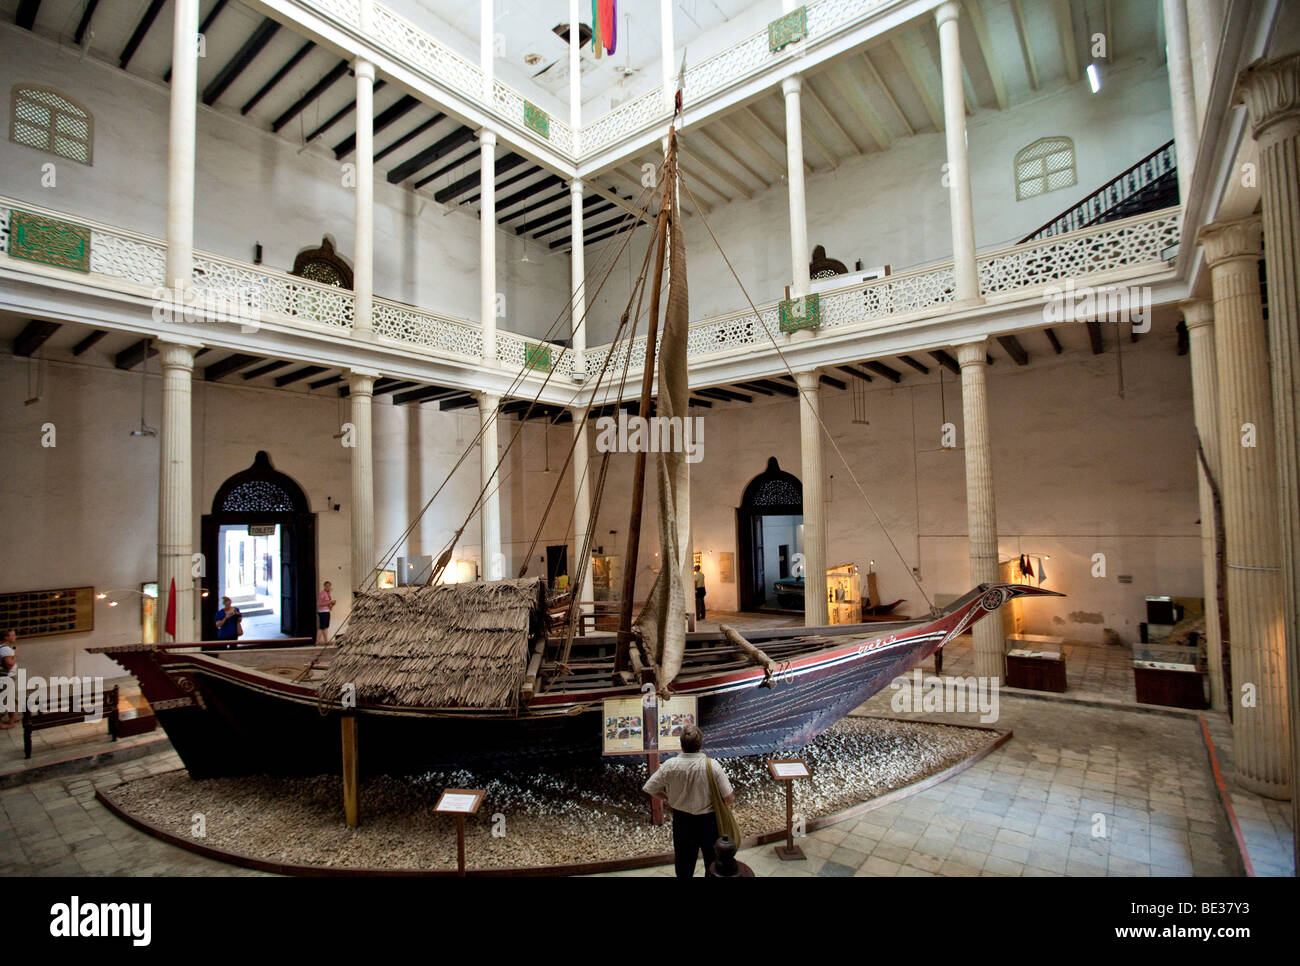 national museum house of wonders stone town zanzibar tanzania stock photo royalty free. Black Bedroom Furniture Sets. Home Design Ideas